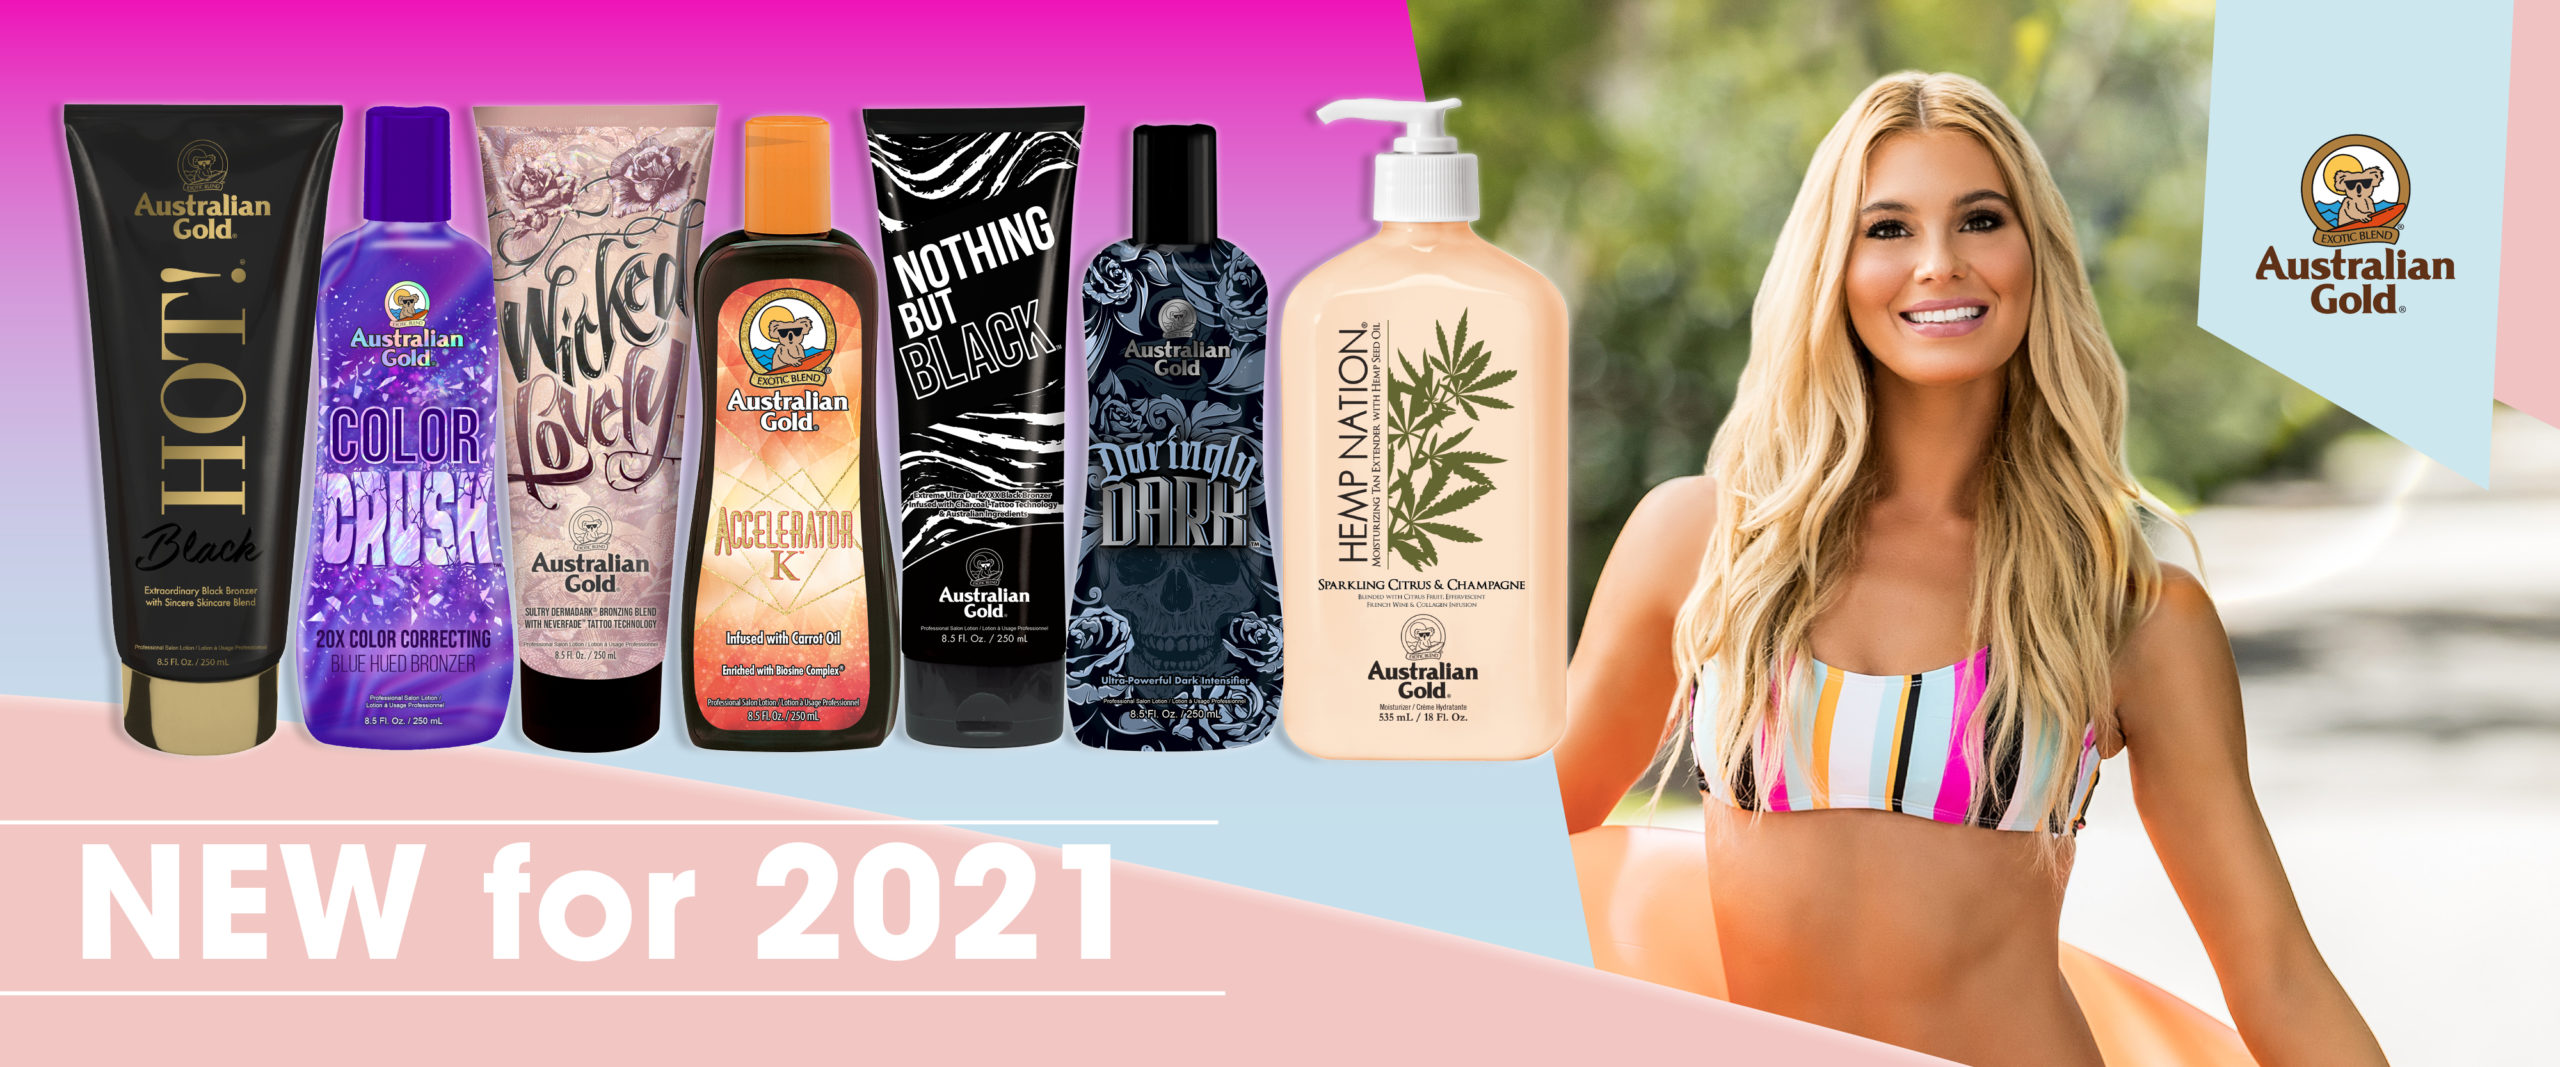 Australian gold new for 2021 tanning lotions